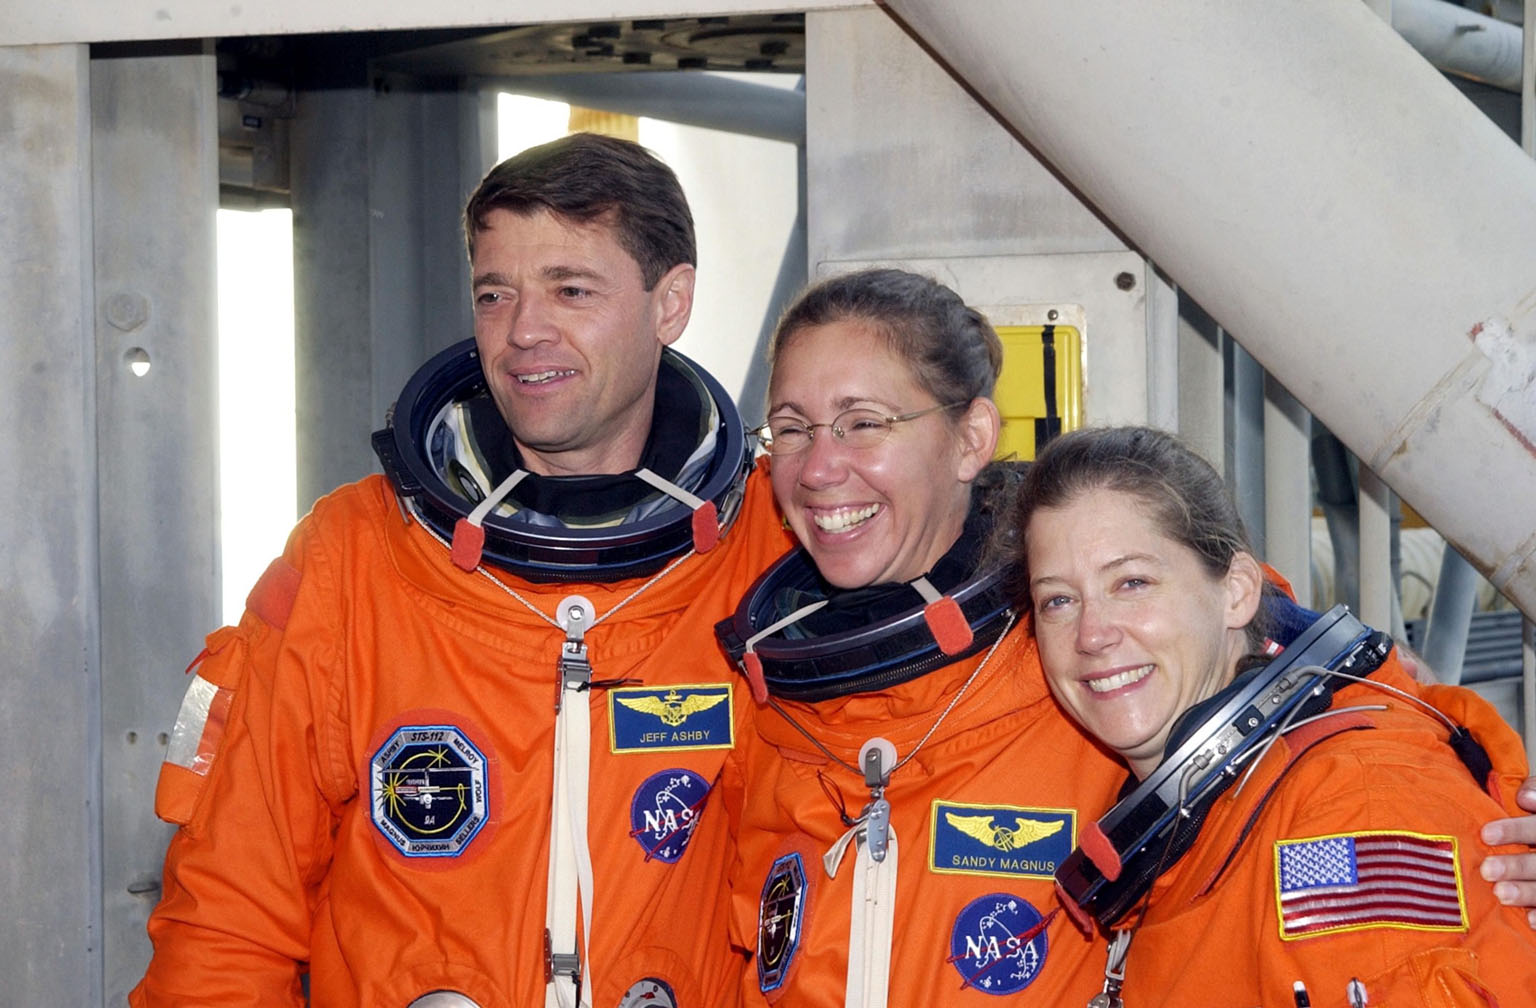 KENNEDY SPACE CENTER, FLA. -- STS-112 Commander Jeffrey Ashby, Mission Specialist Sandra Magnus, and Pilot Pamela Melroy take a momentary break from training at Pad 39B during Terminal Countdown Demonstration Test activities, which include a simulated launch countdown. Launch of STS-112 aboard Space Shuttle Atlantis is scheduled for Oct. 2, between 2 and 6 p.m. EDT. STS-112 is the 15th assembly mission to the International Space Station. Atlantis will be carrying the S1 Integrated Truss Structure, the first starboard truss segment, to be attached to the central truss segment, S0, and the Crew and Equipment Translation Aid (CETA) Cart A. The CETA is the first of two human-powered carts that will ride along the ISS railway, providing mobile work platforms for future spacewalking astronauts.